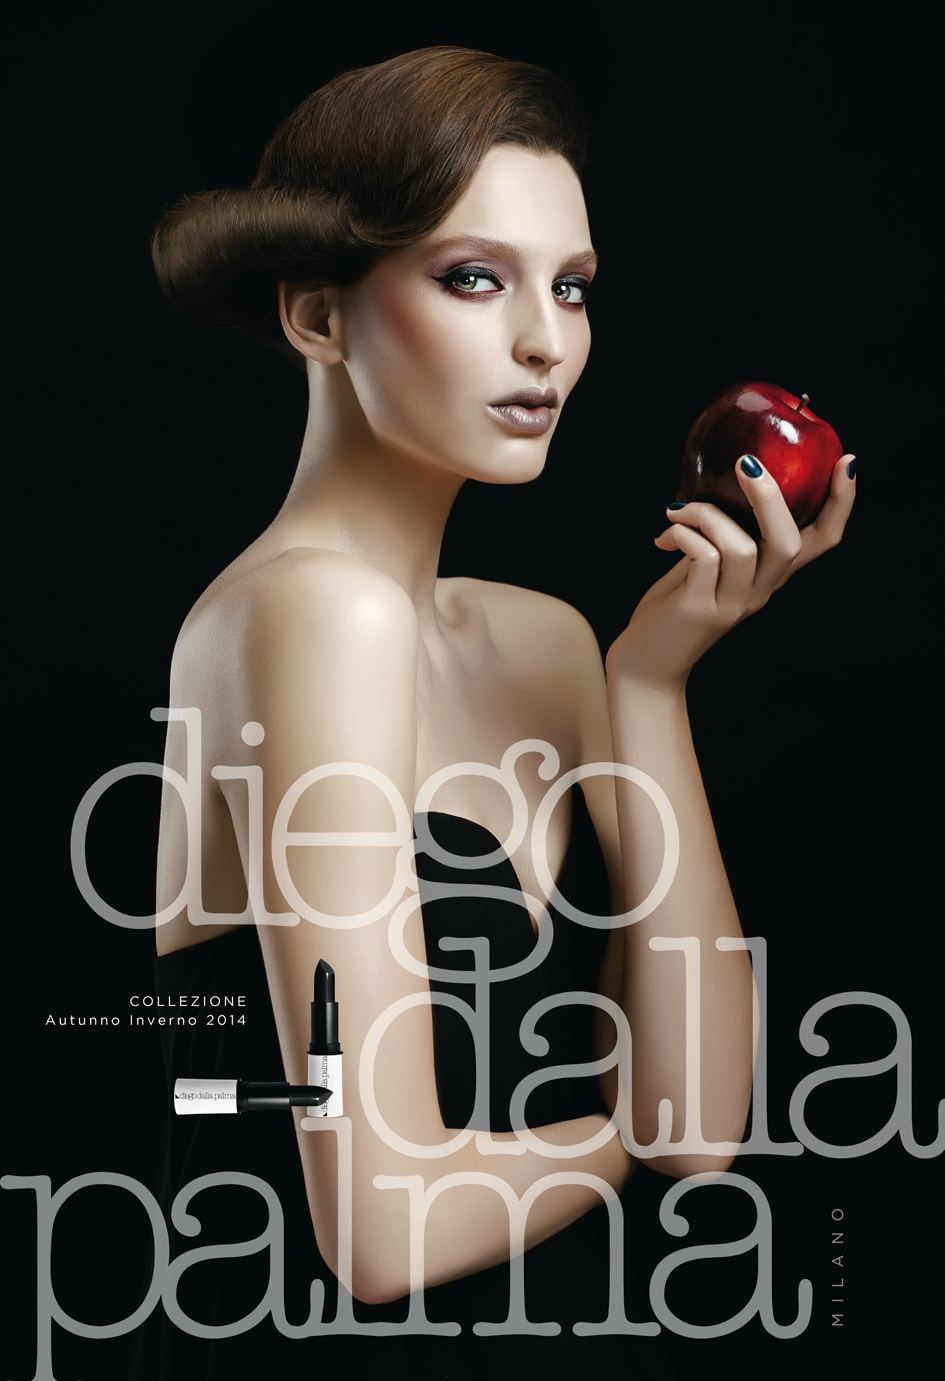 diego dalla palma make up autunni inverno 2014